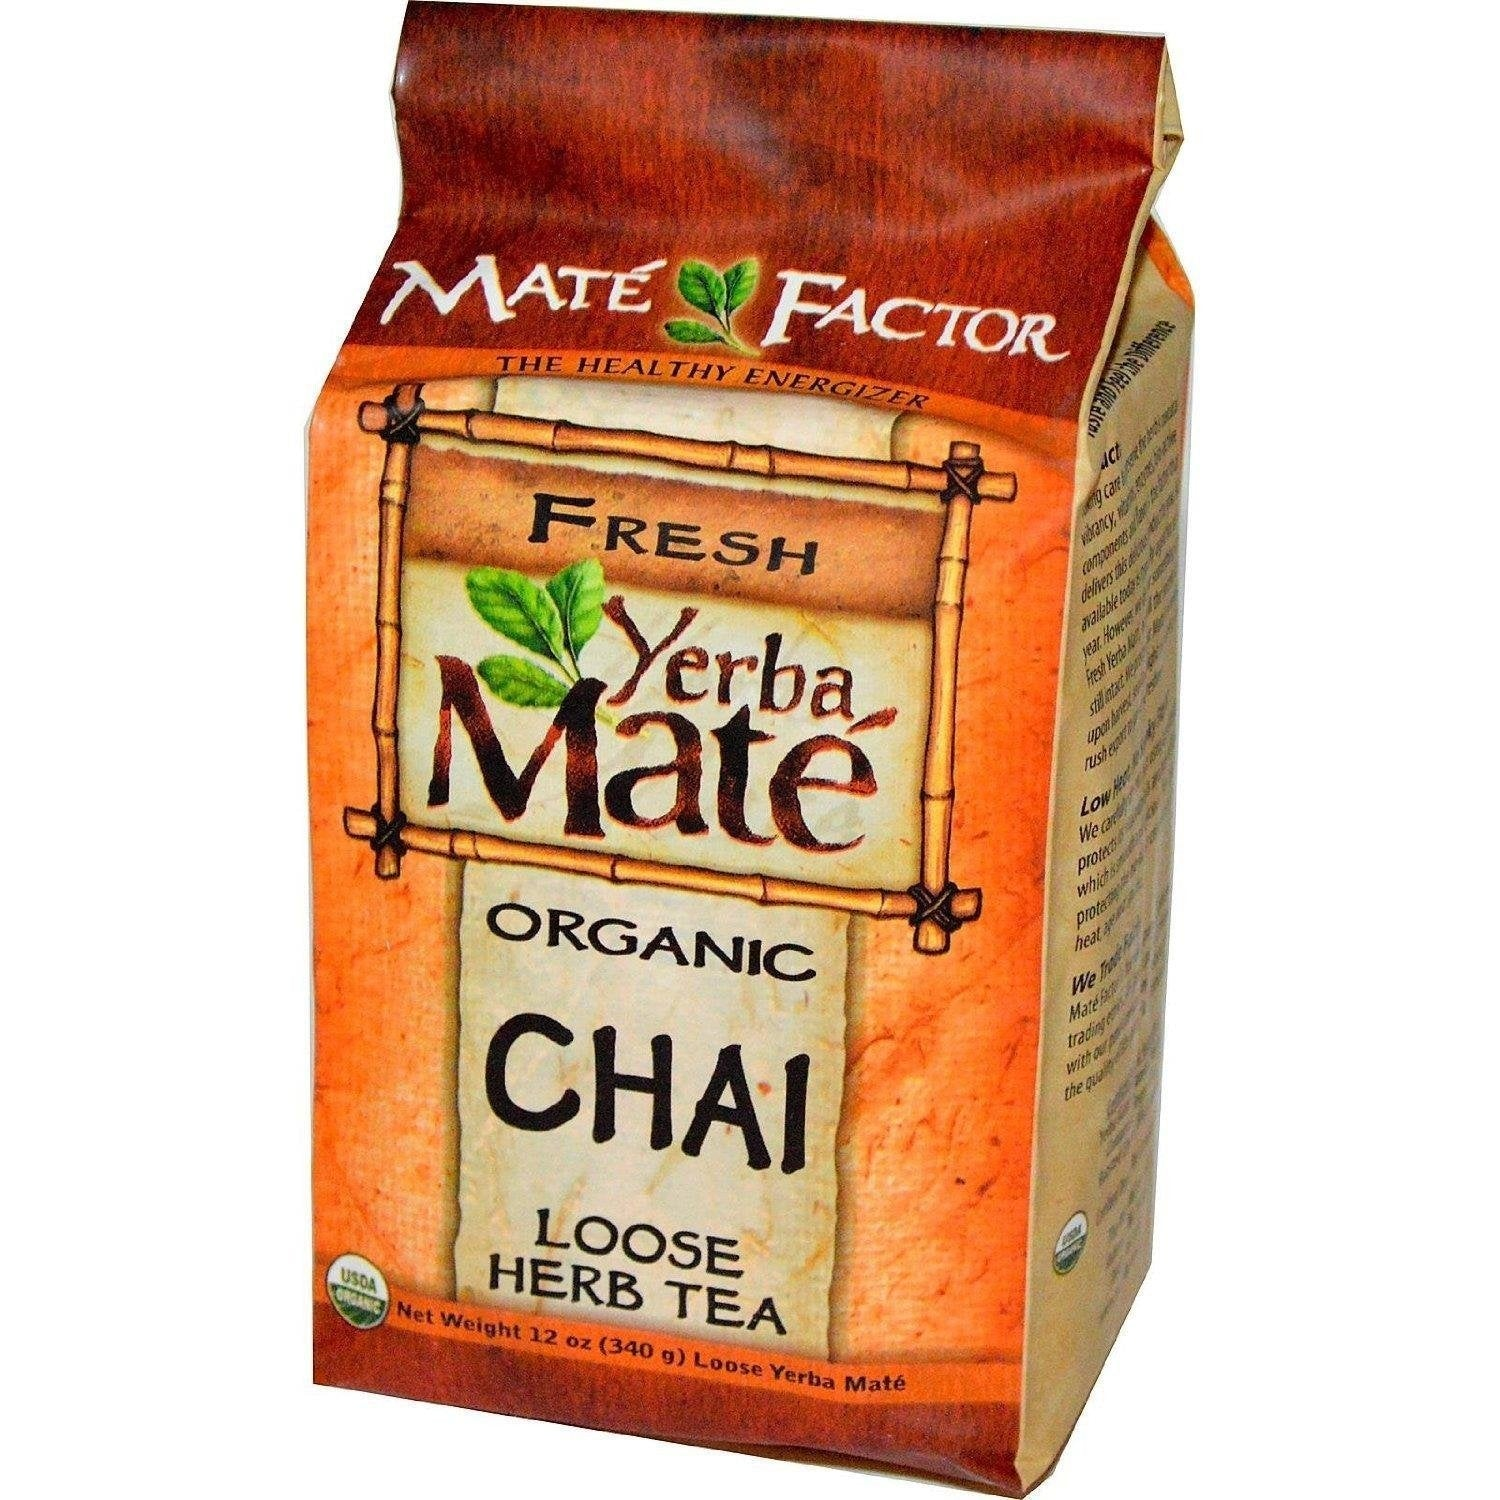 Mate Factor Yerba Organic Chai Loose, 12 Ounce